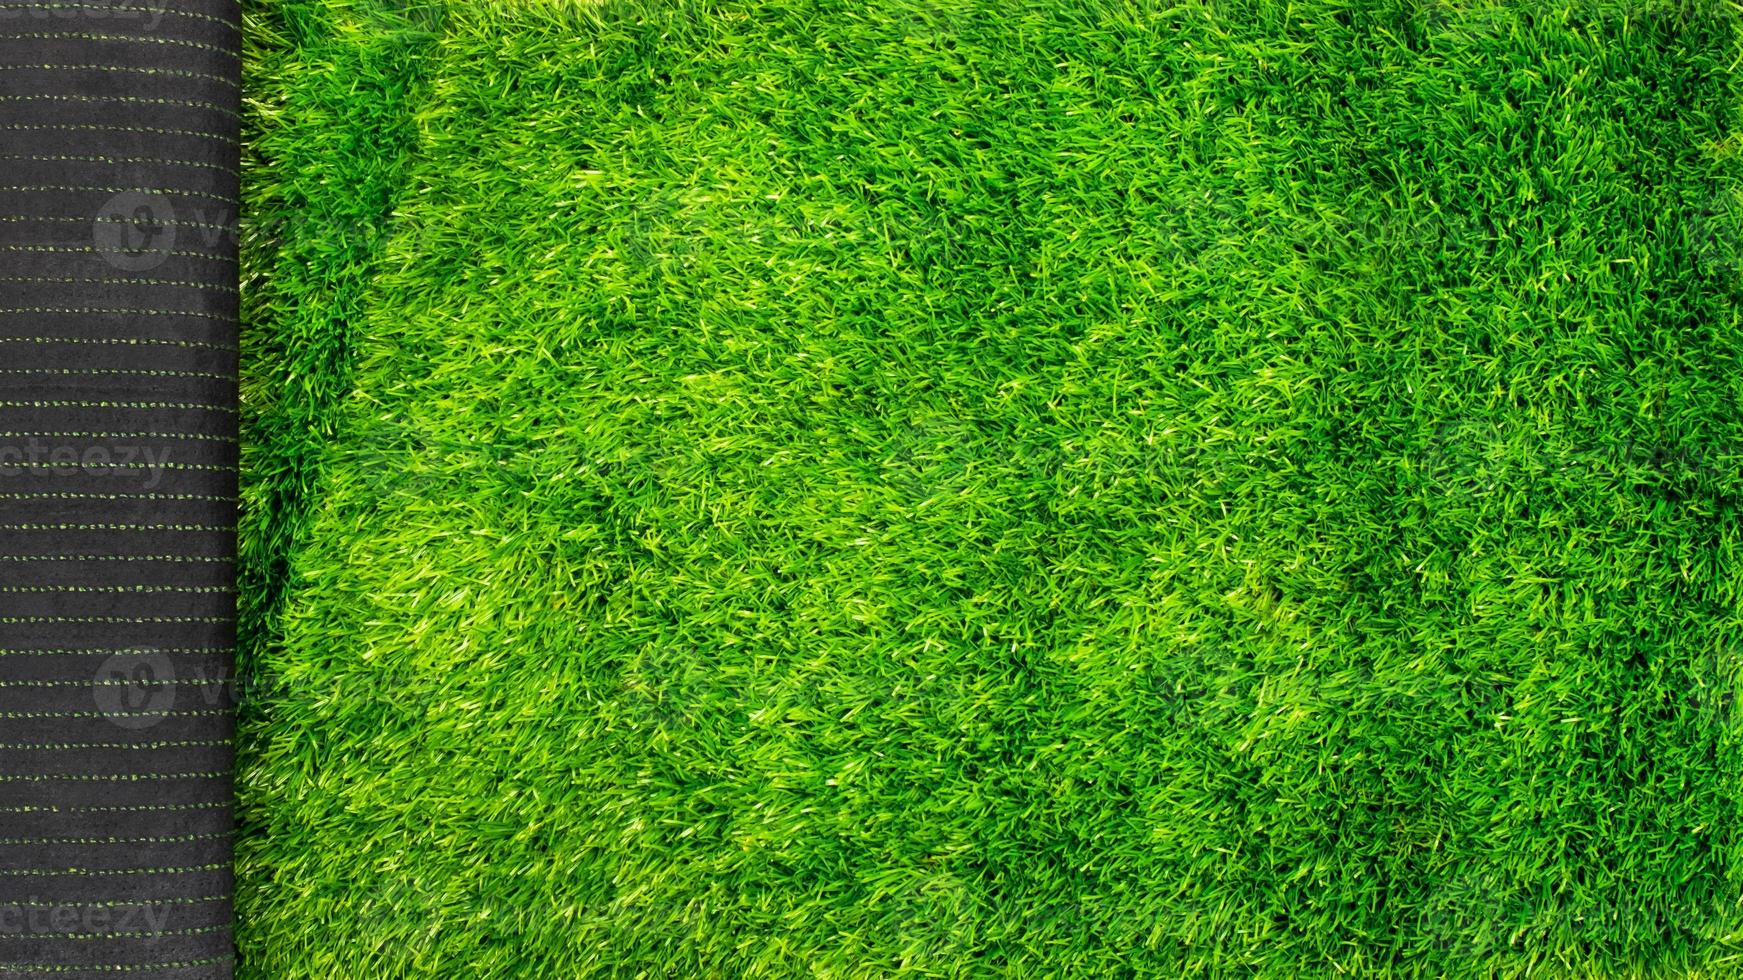 artificial grass turf for sports fields green lawn mockup with copy space photo